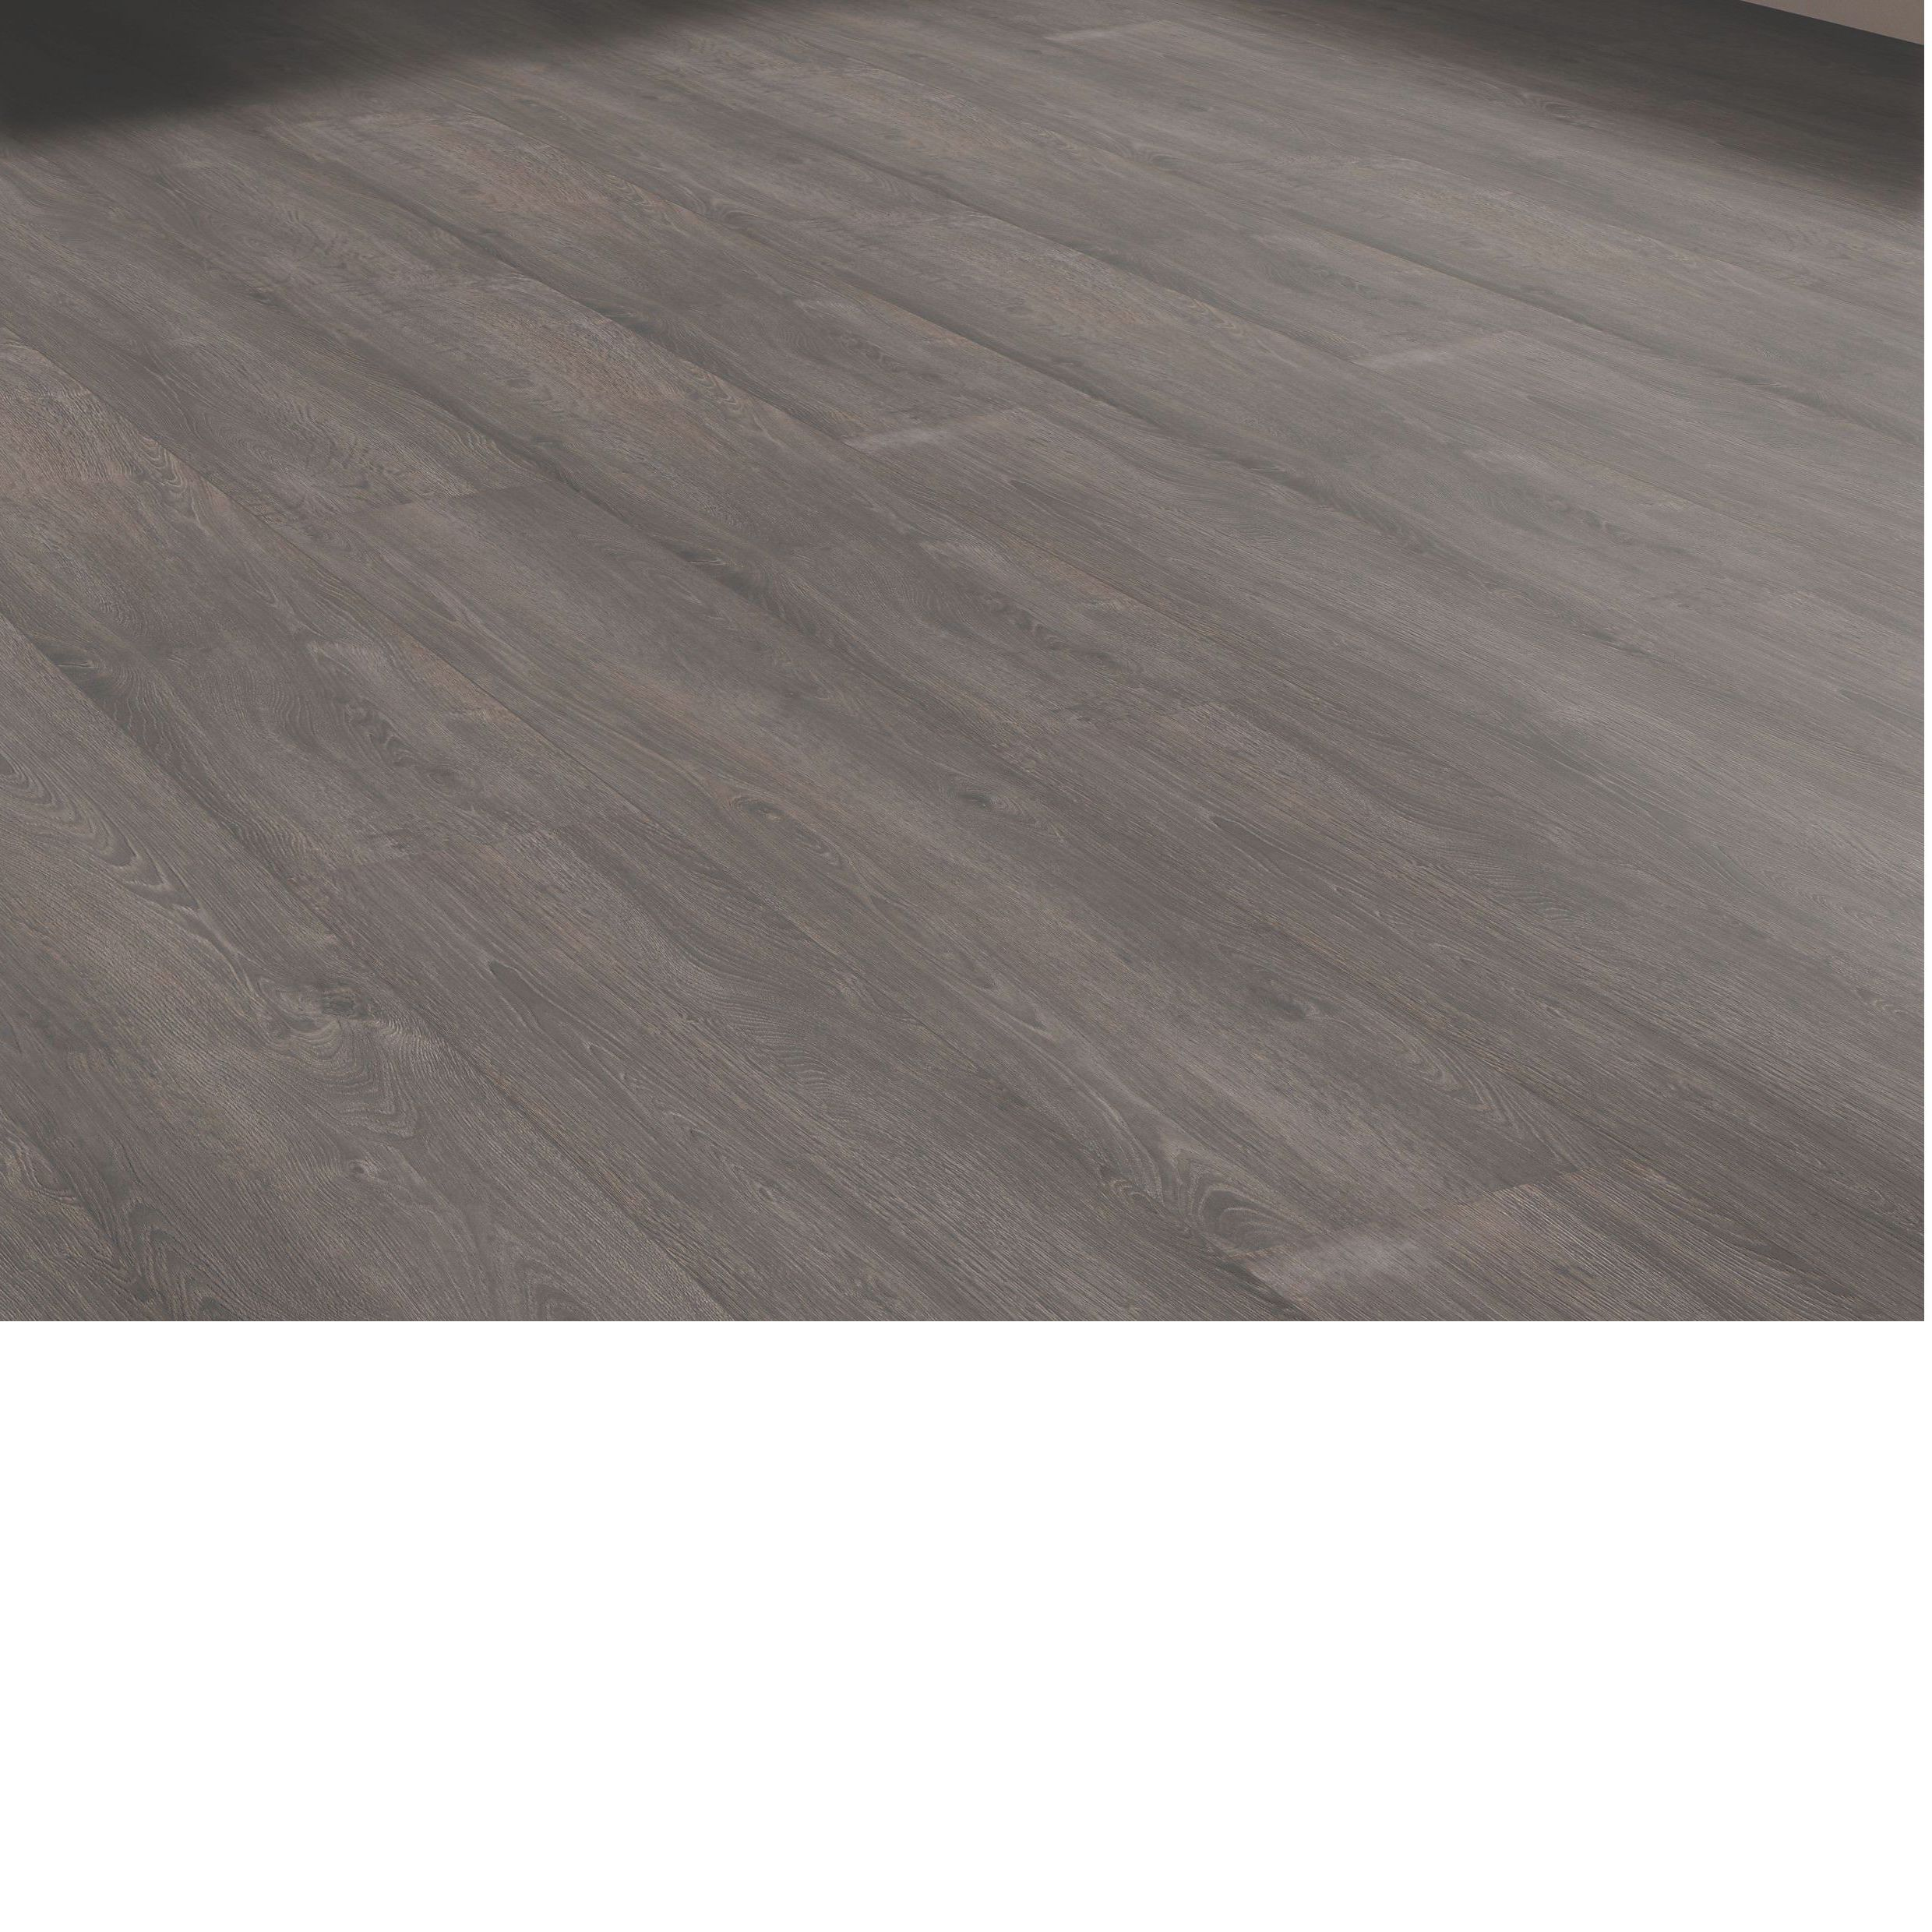 Princeps Santander Oak Effect Wide Plank Laminate Flooring 1 45 M² Pack